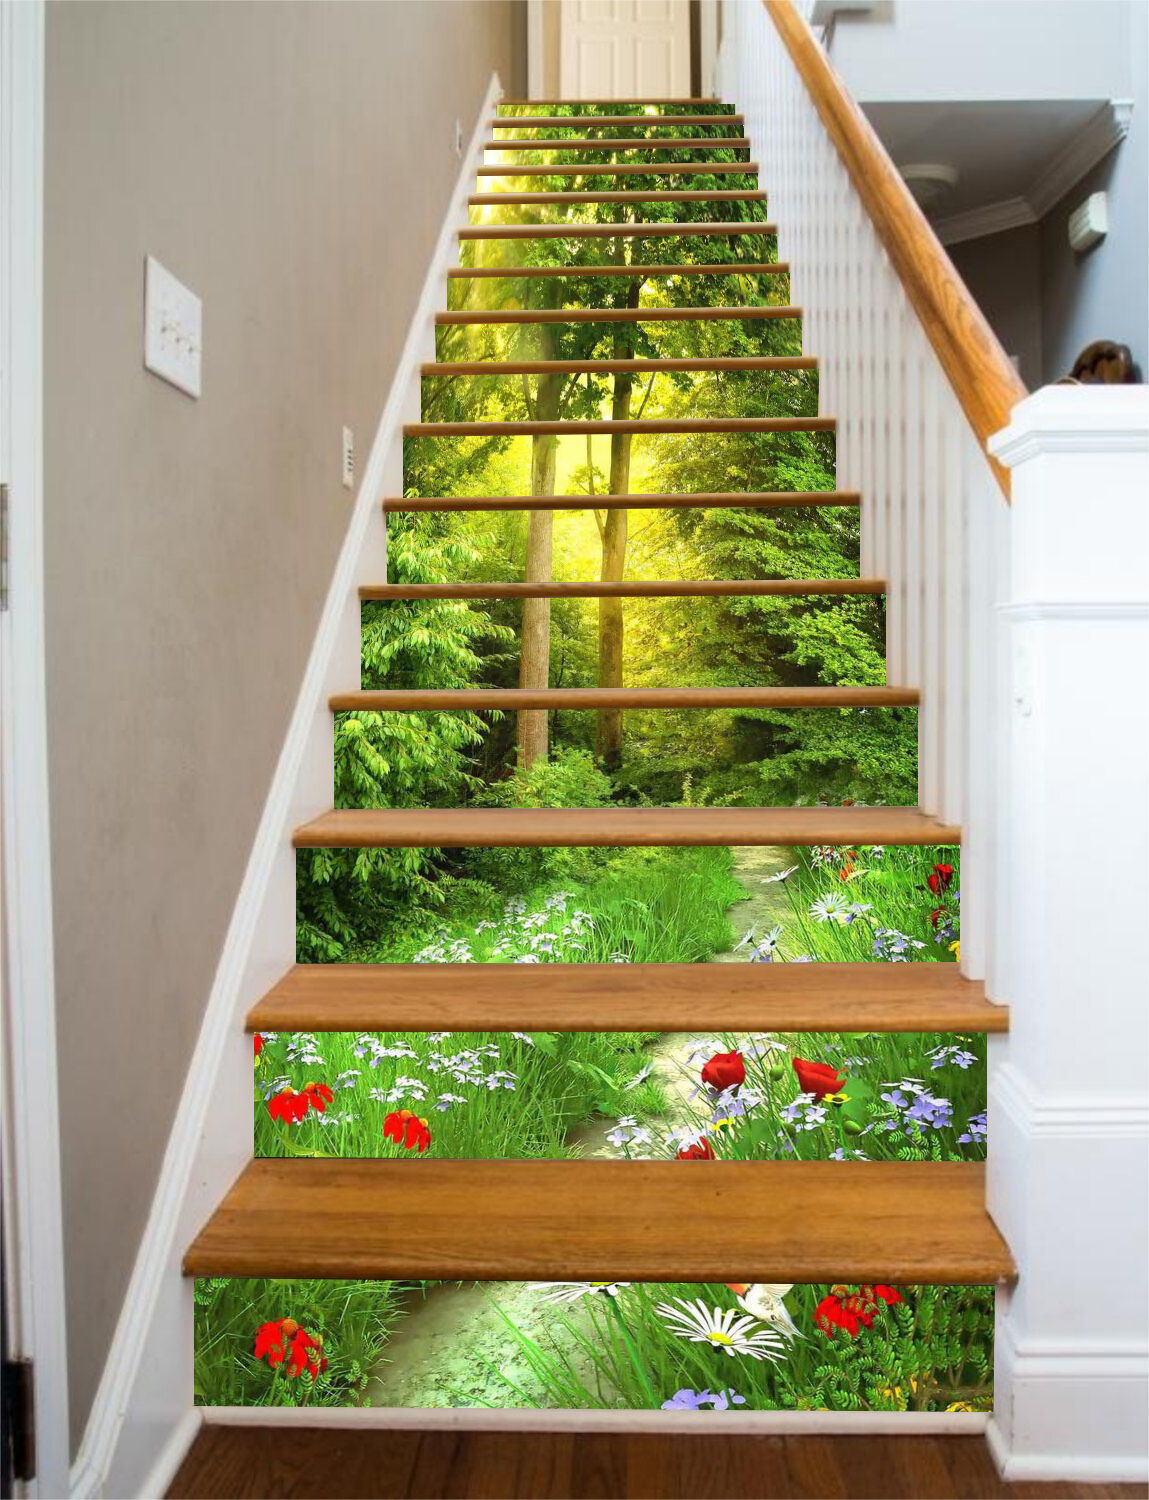 3D Forest Lawn 7 Stair Risers Decoration Photo Mural Vinyl Decal Wallpaper UK